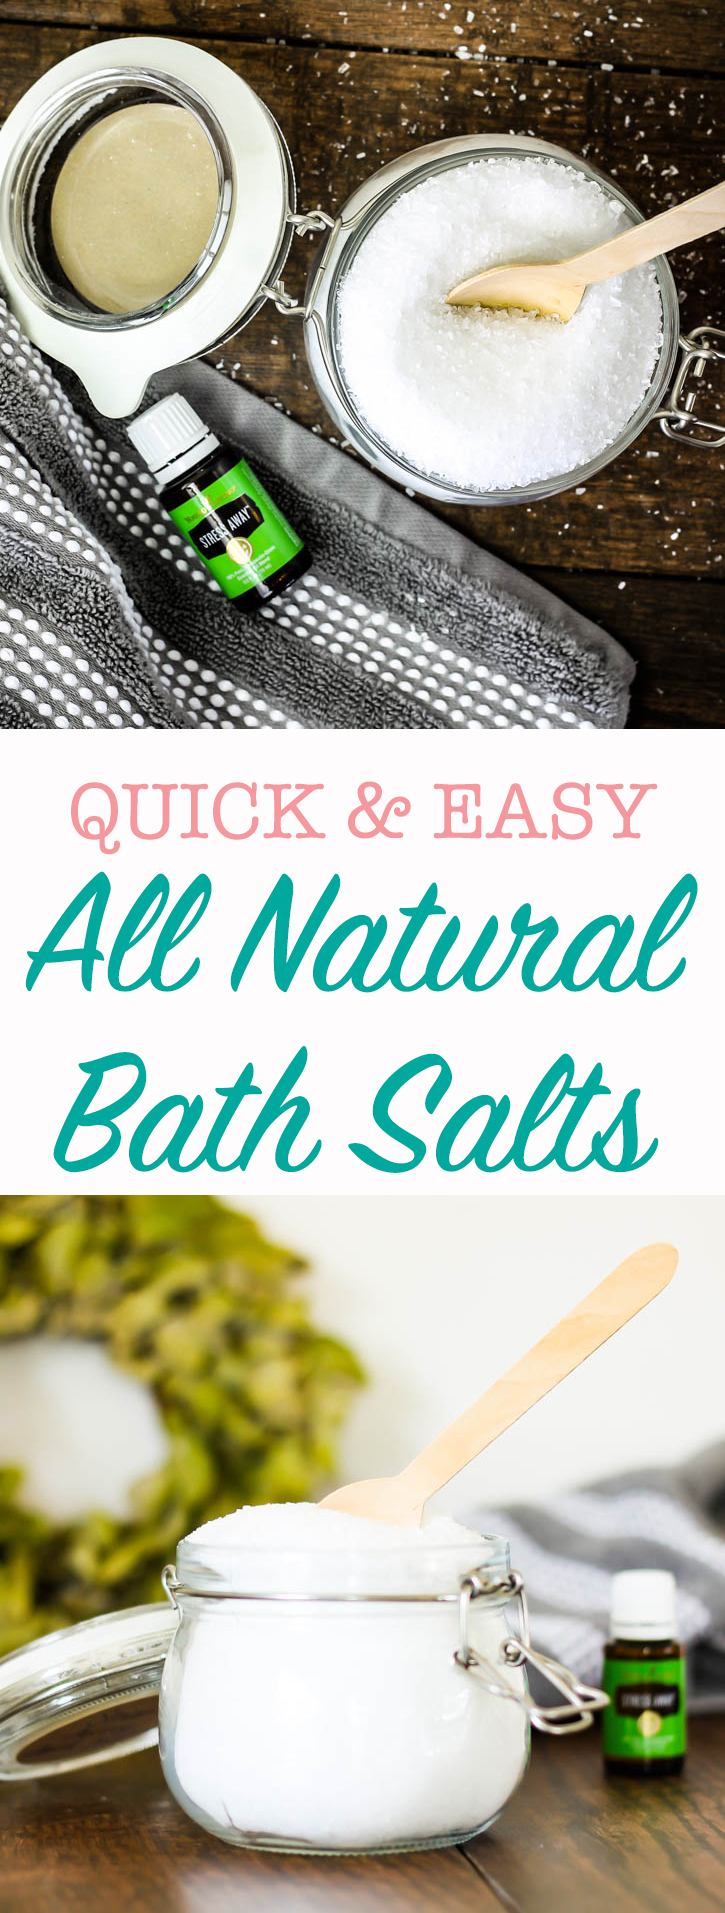 how to make your own natural bath salts - it's so easy! 2 ingredients & about 2 minutes!